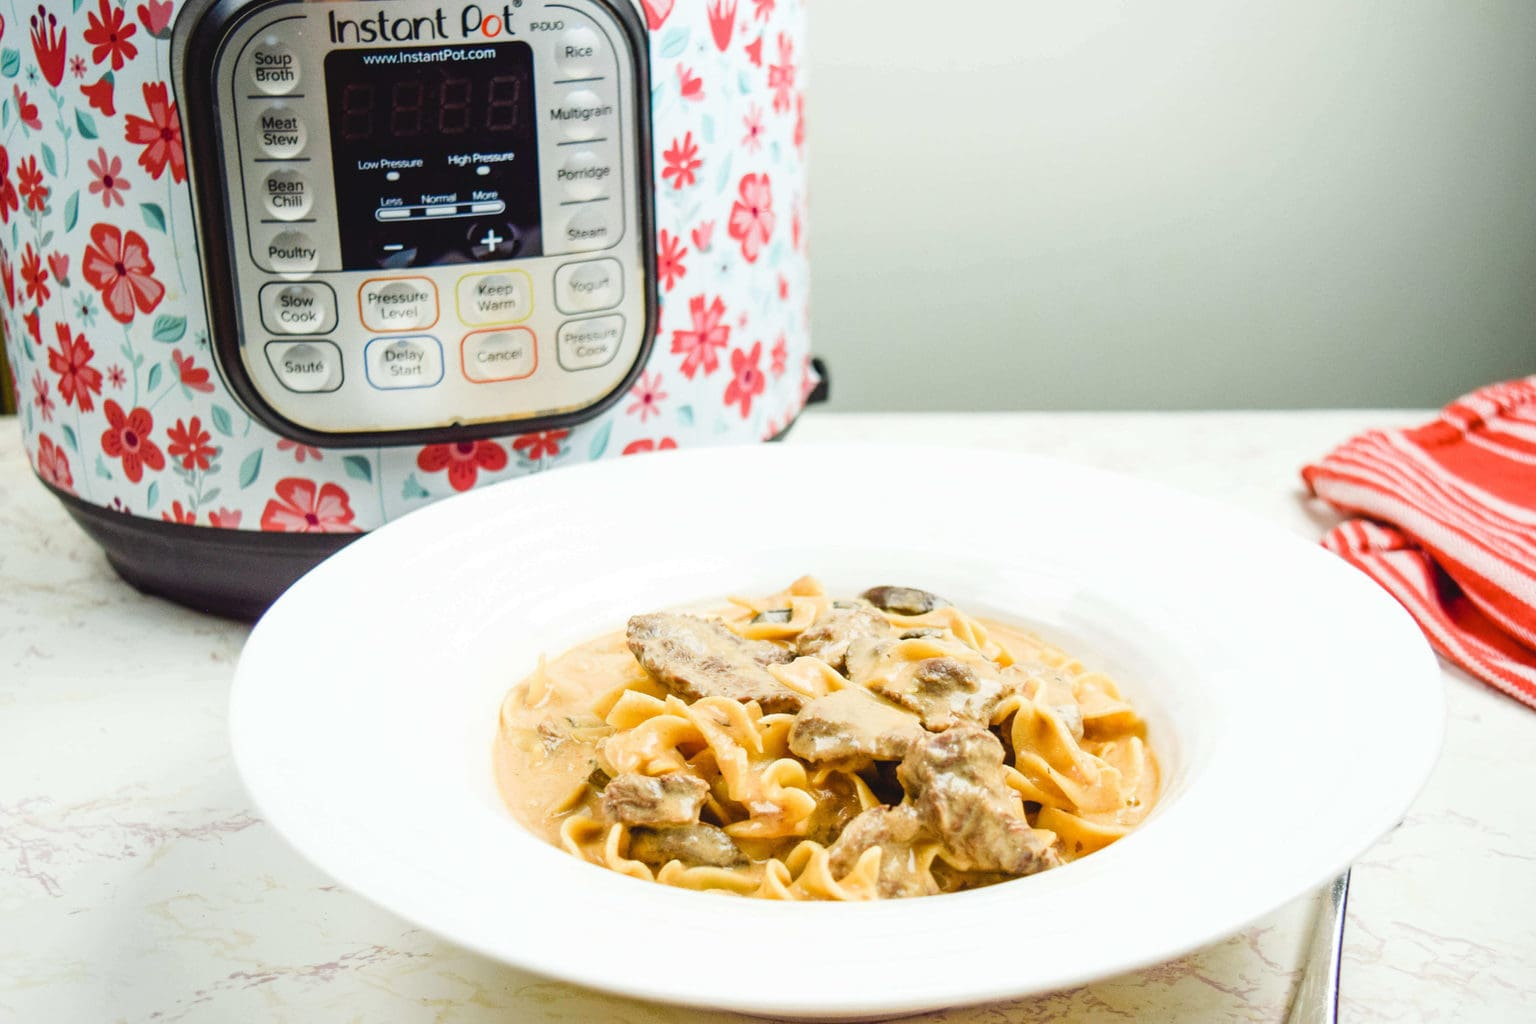 A bowl of beef stroganoff in front of an instant pot.